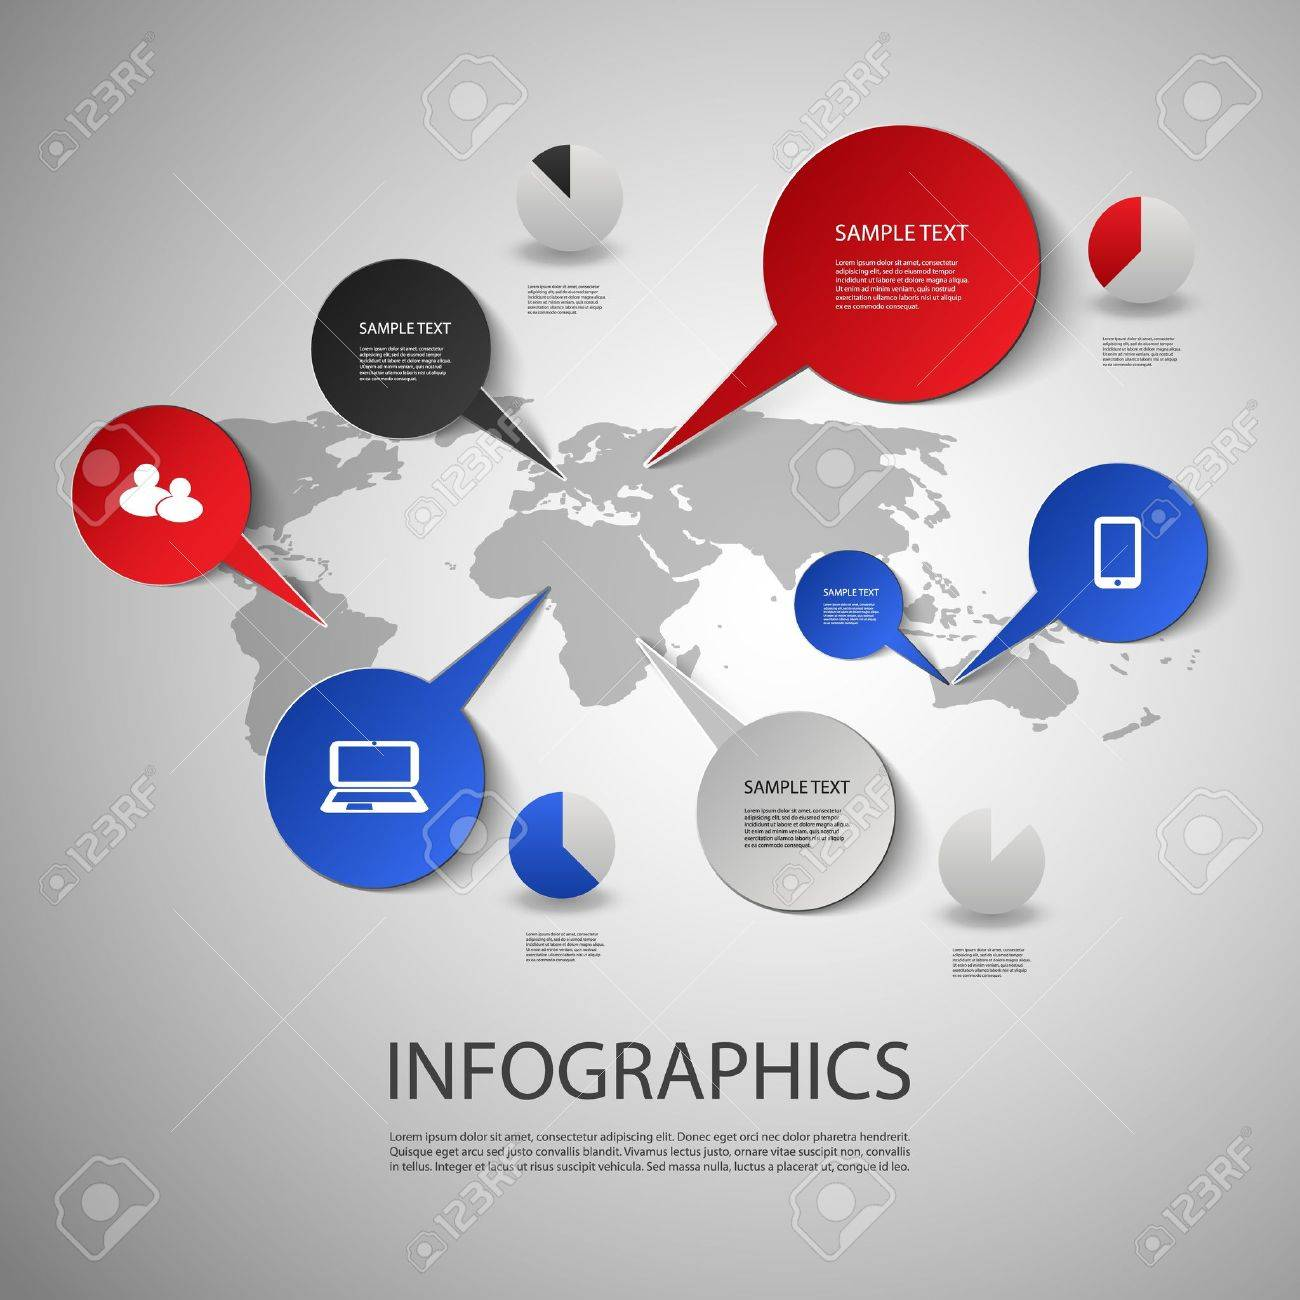 Infographic design world map and icons royalty free cliparts infographic design world map and icons stock vector 20381746 gumiabroncs Choice Image